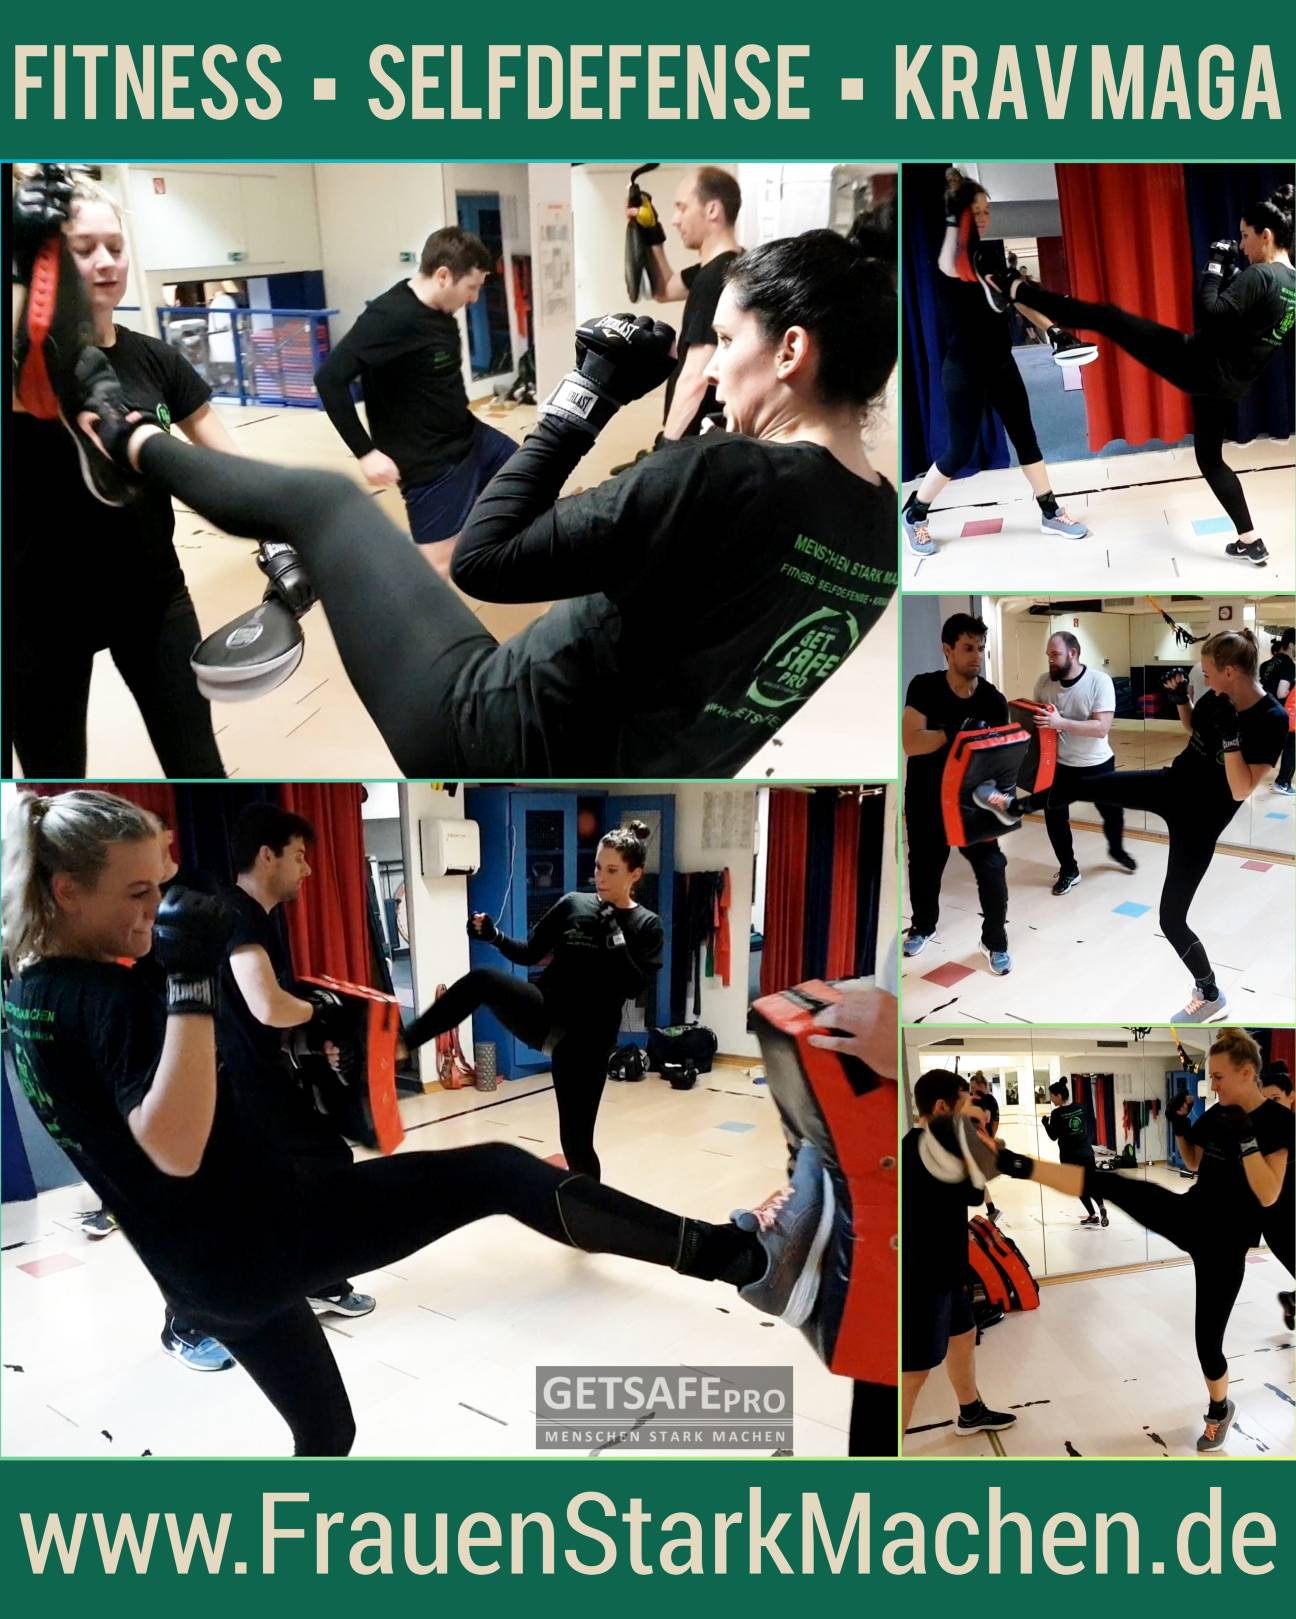 GETSAFEpro Krav Maga Training Mainz Selbstverteidigung Fitness-Center Mainz City (54)